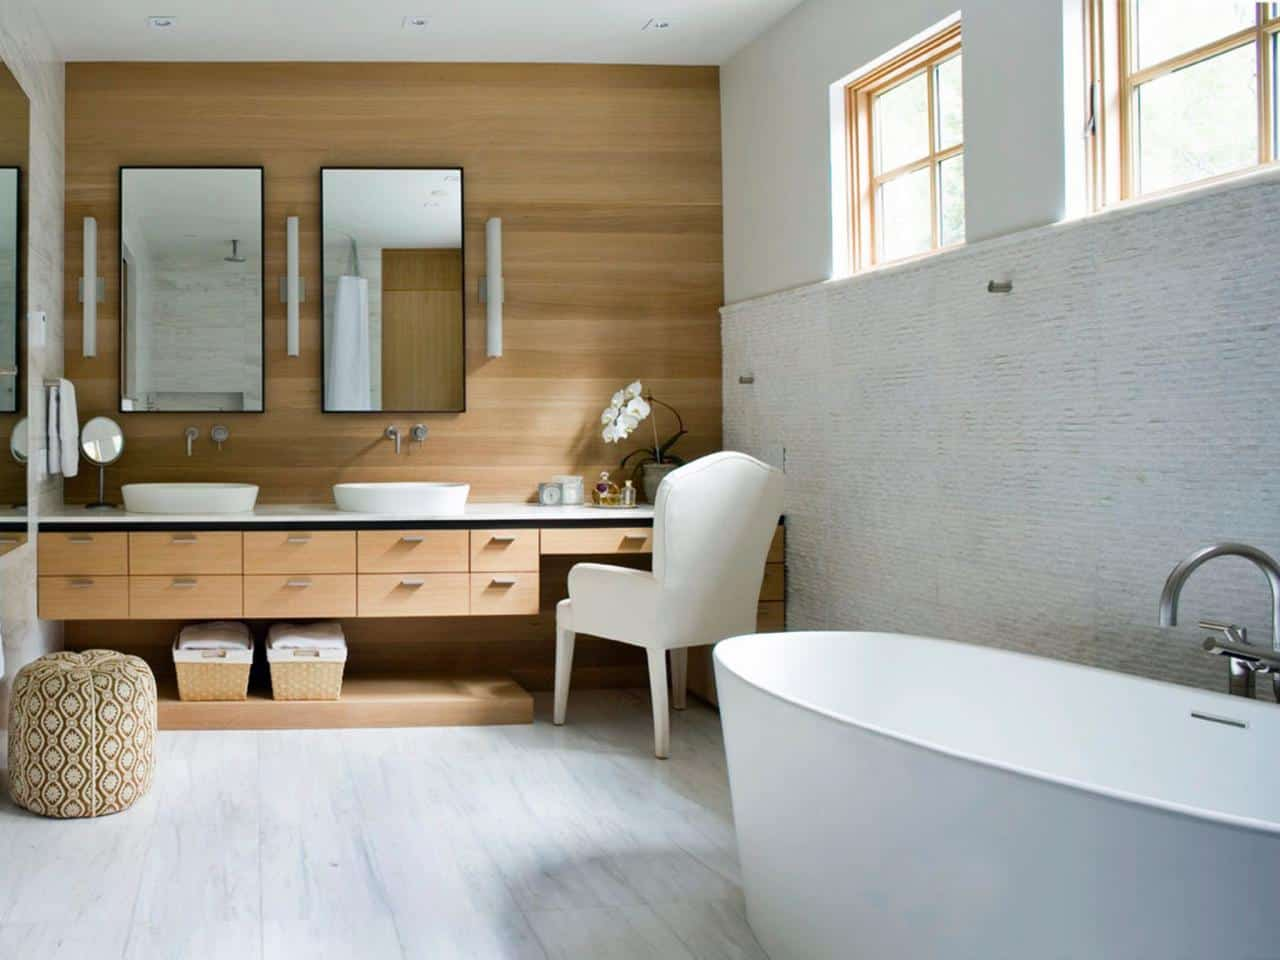 Neutral Hues In The Bathroom Give Your Bathroom The Spa Feeling It Deserves